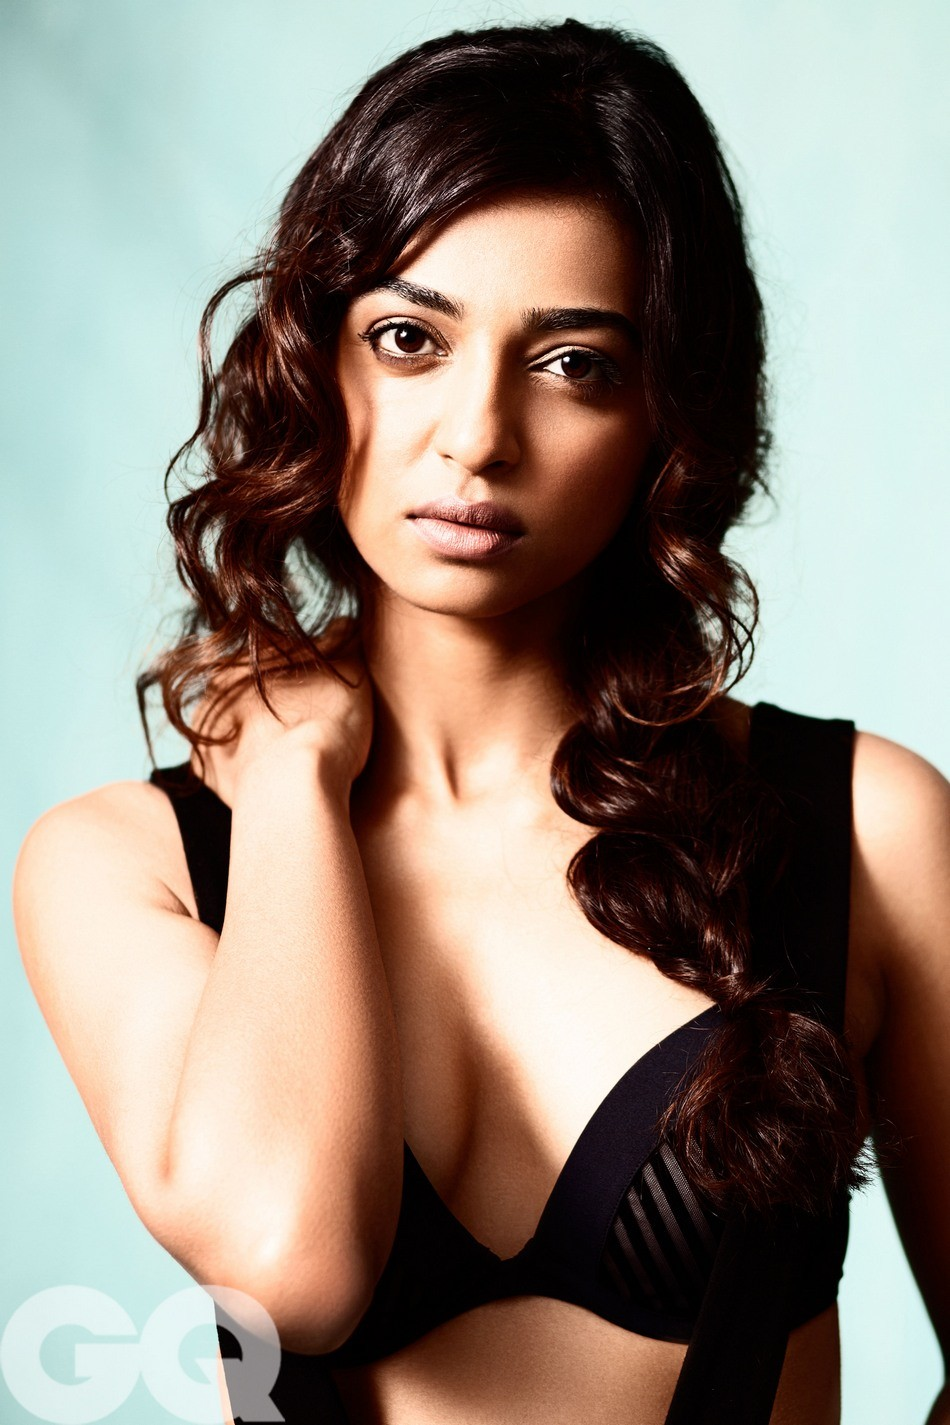 Radhika Apte Hot GQ Magazine Hottest